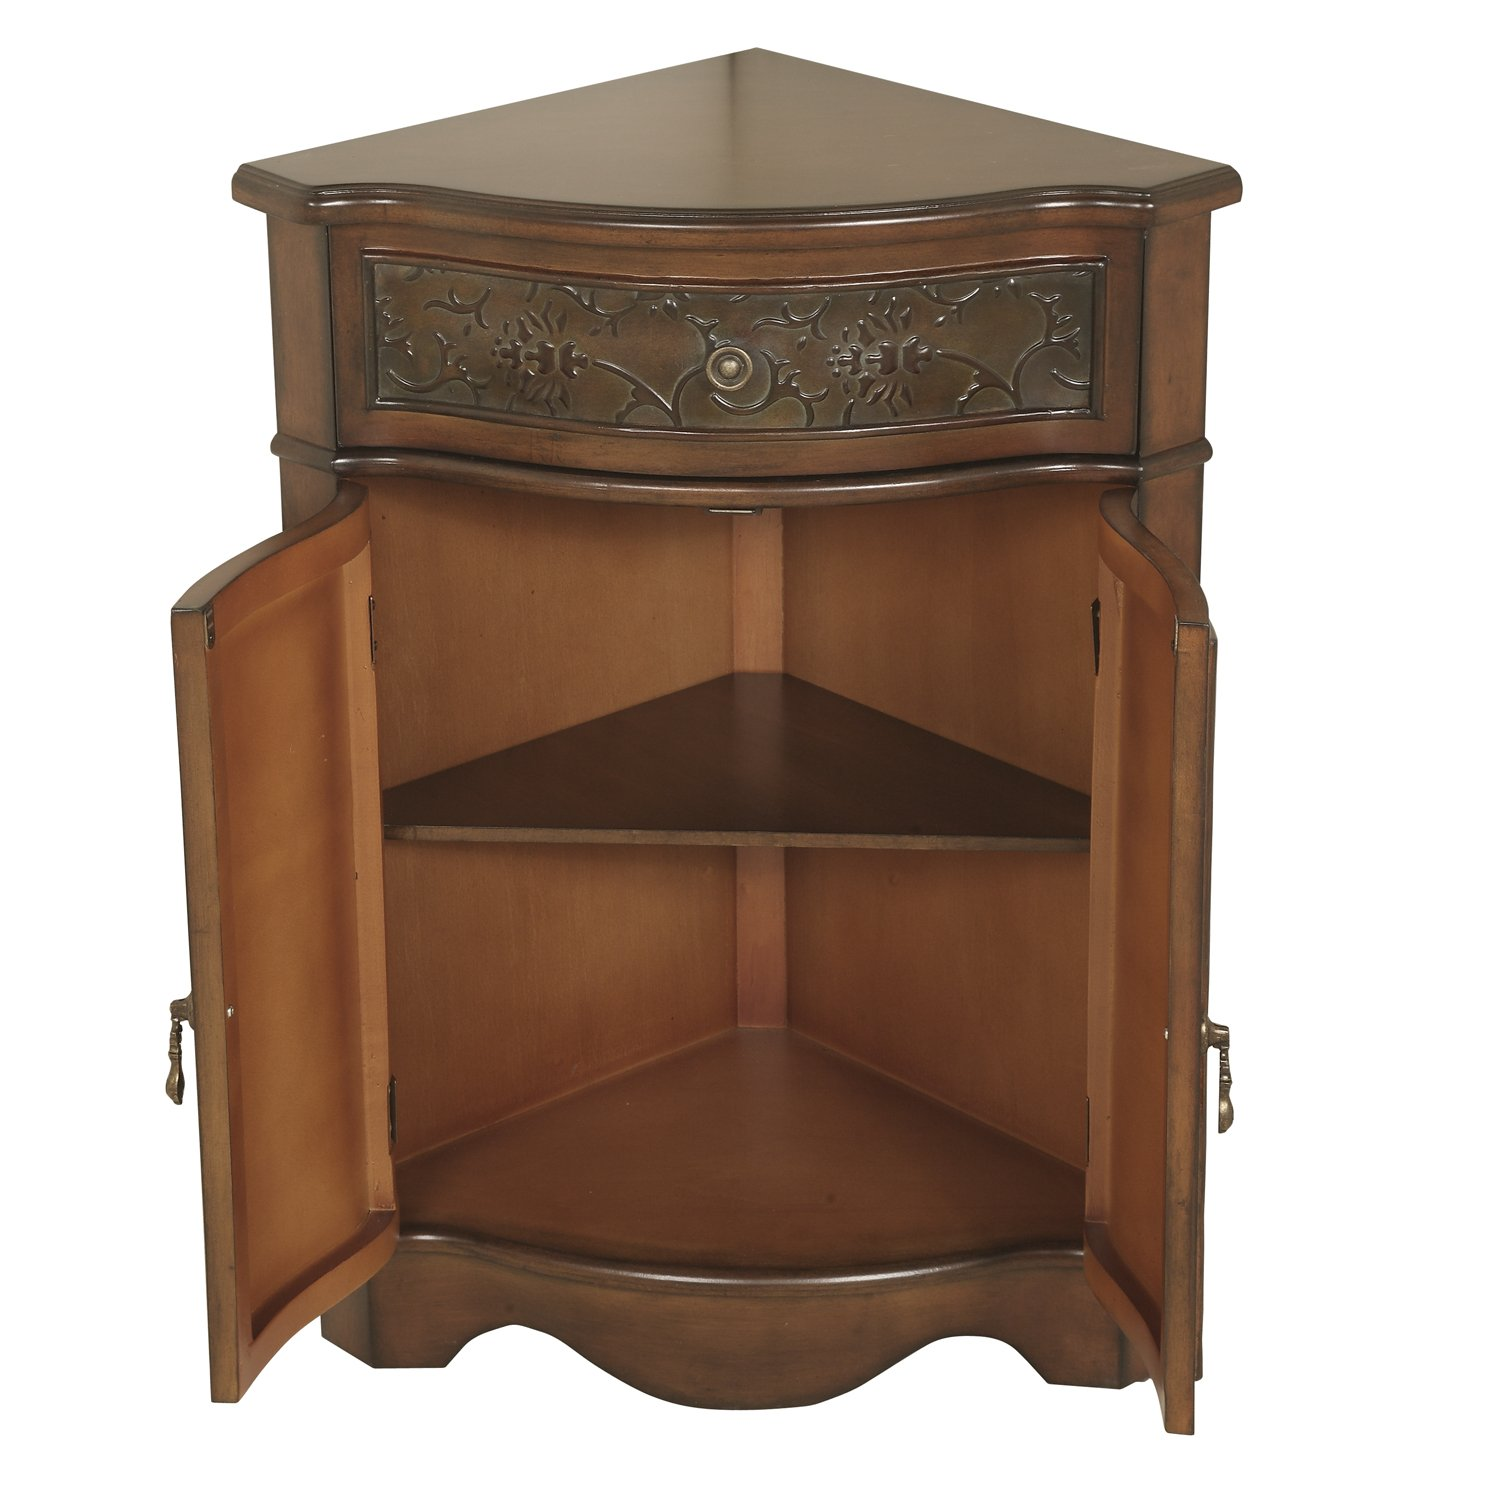 Amazon.com: Walnut Corner Cabinet: Kitchen & Dining